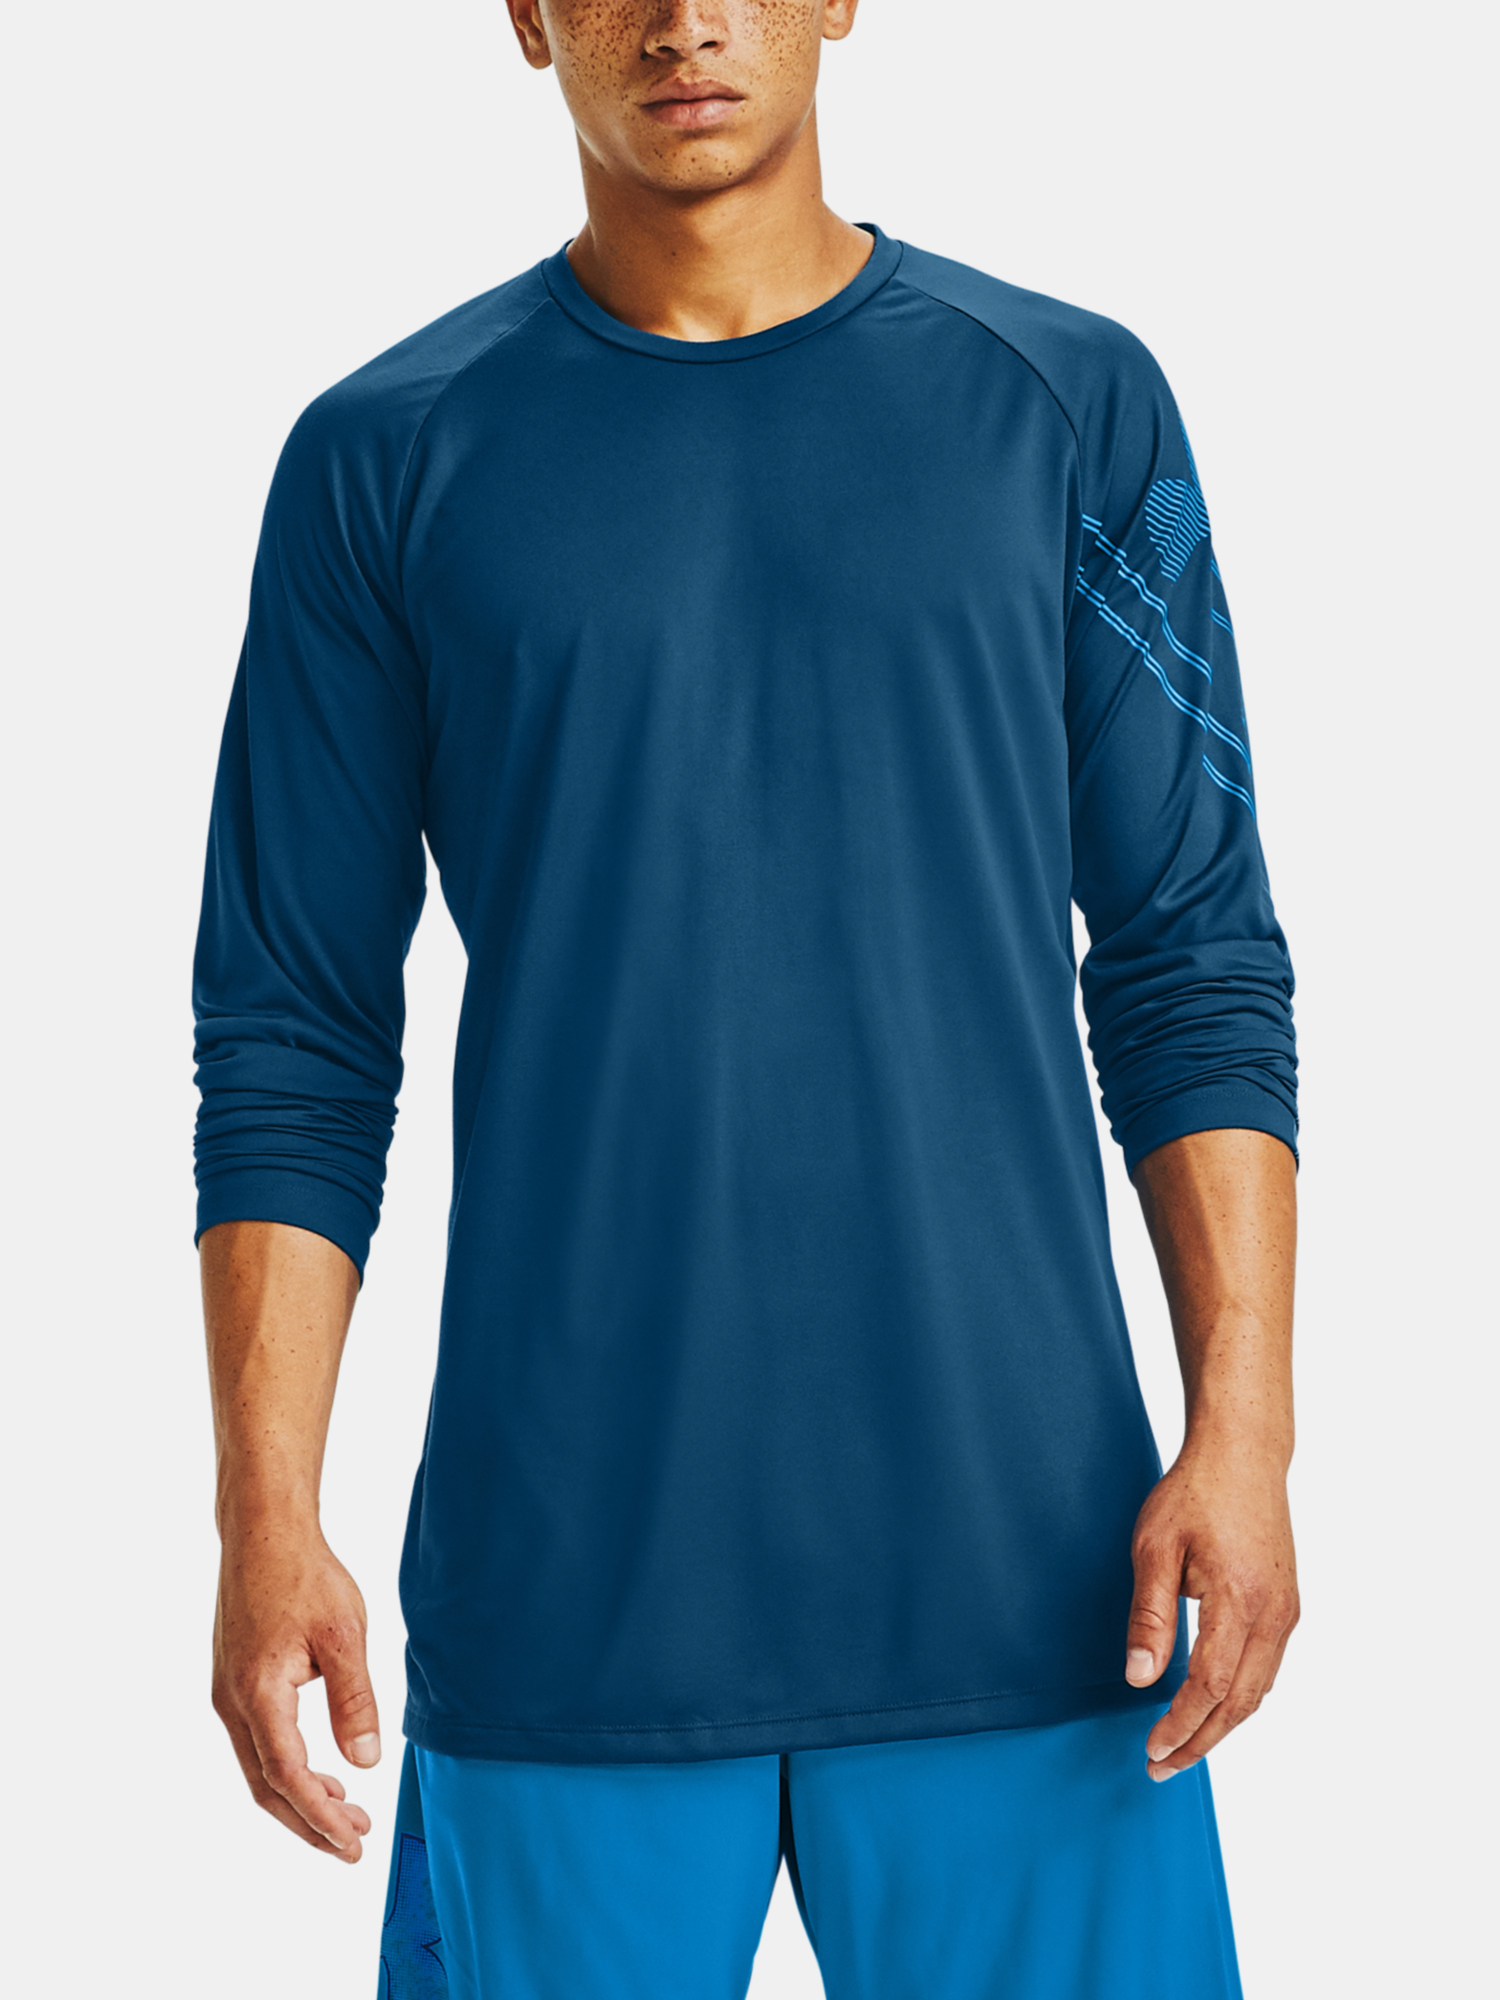 Tričko Under Armour GRADIENT LOGO TECH LS-BLU (1)